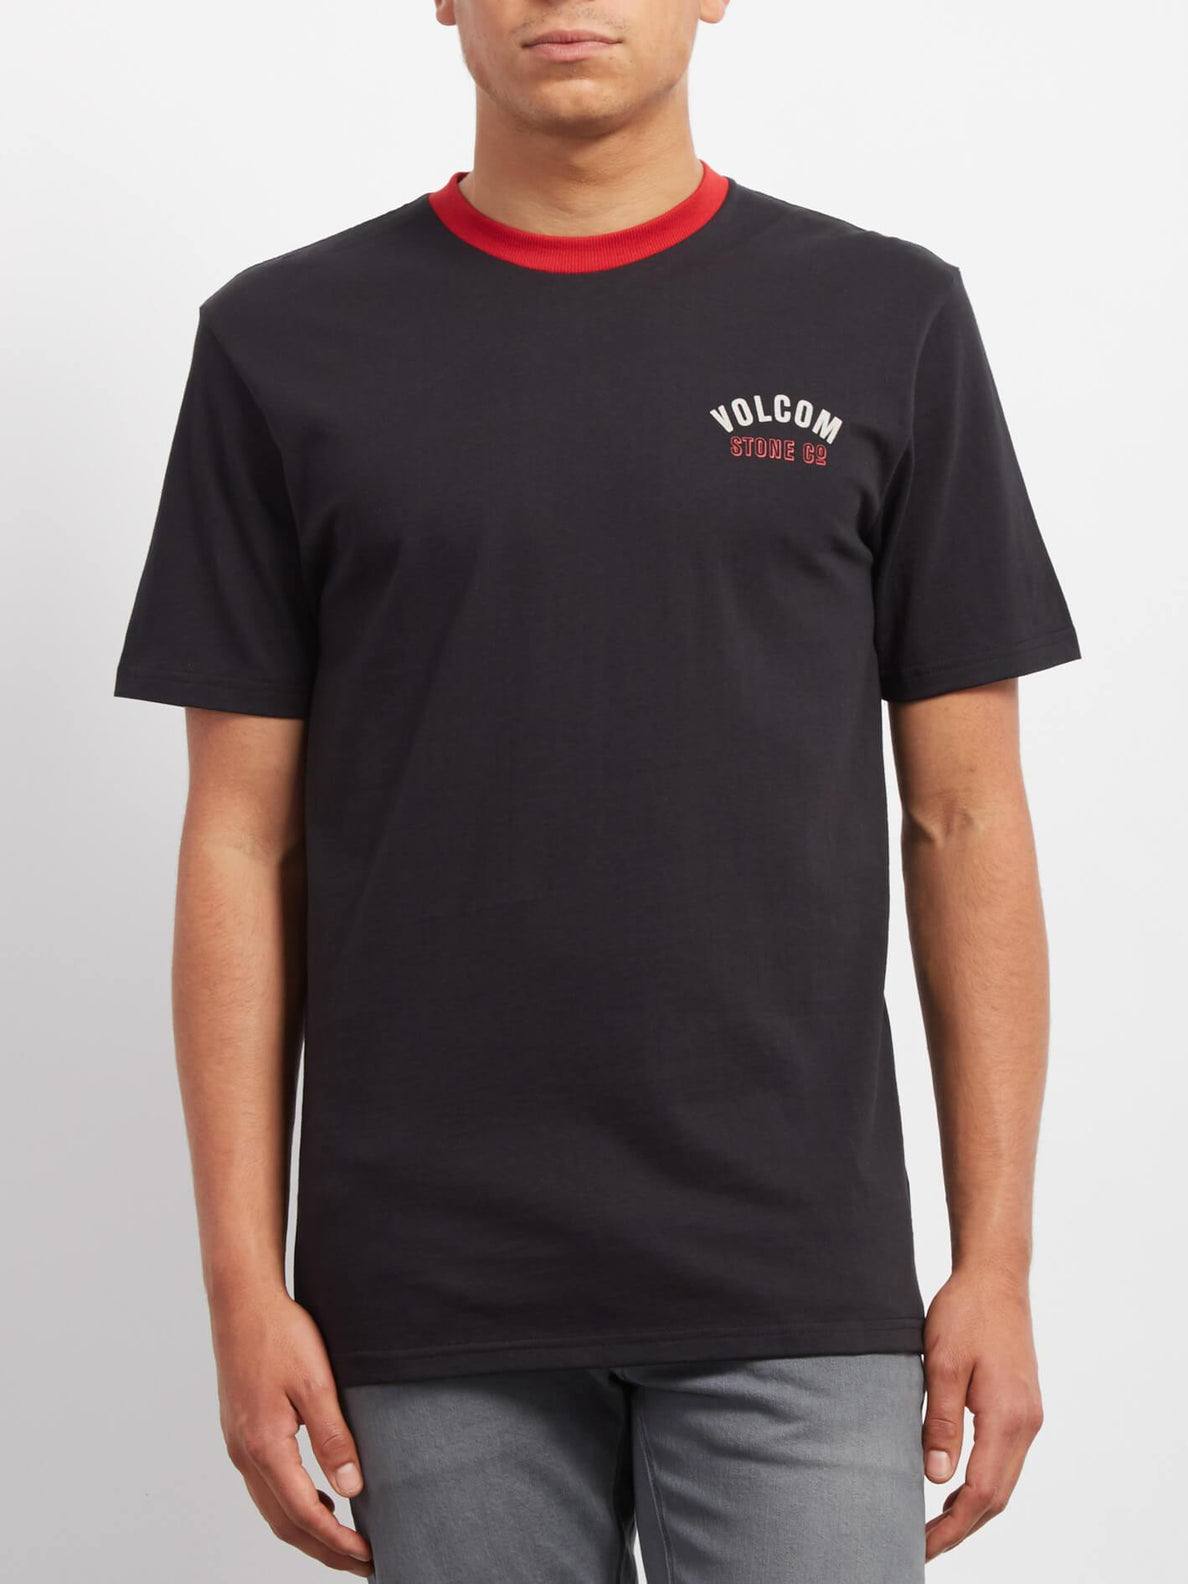 Safe Bet Rng   T-shirt - Engine Red